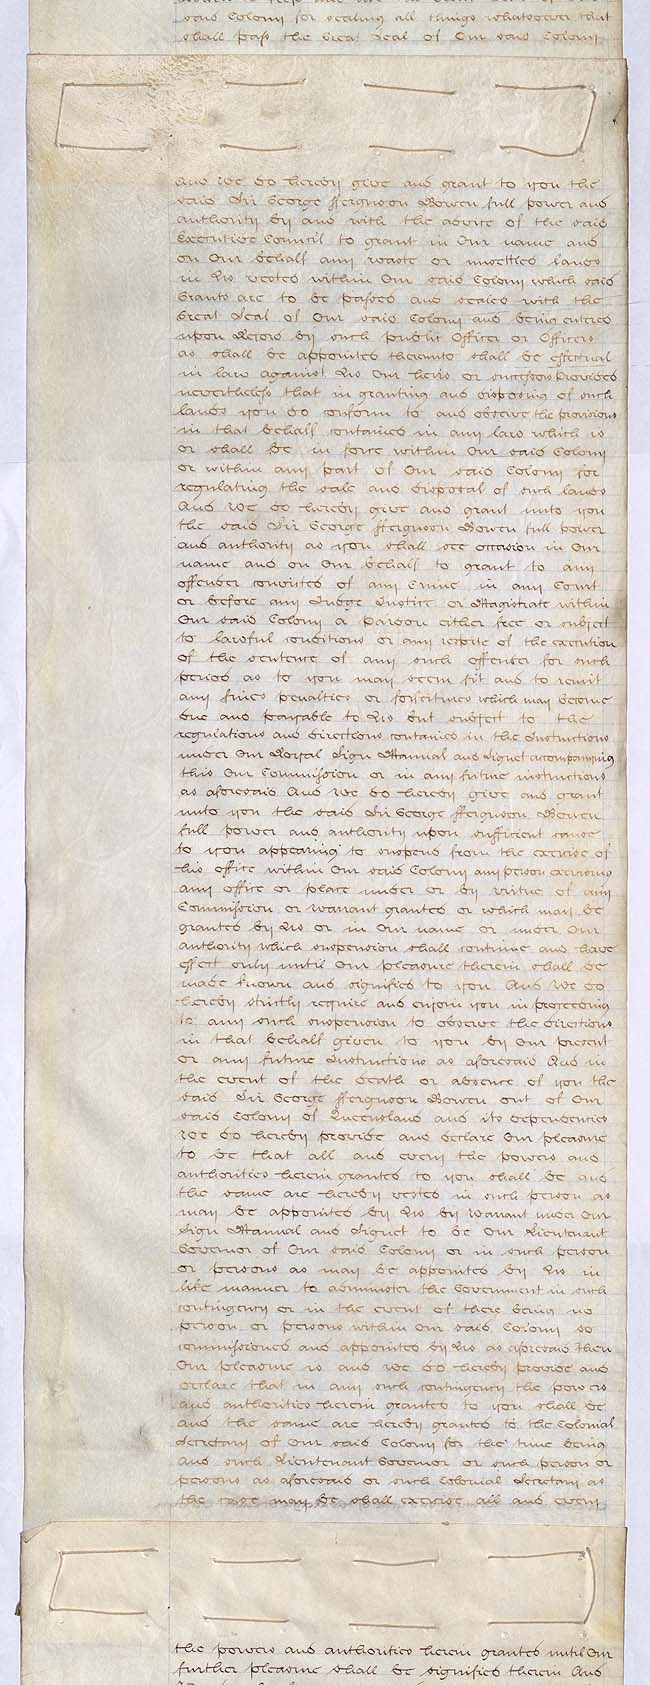 Letters Patent erecting Colony of Queensland 6 June 1859 (UK), p4